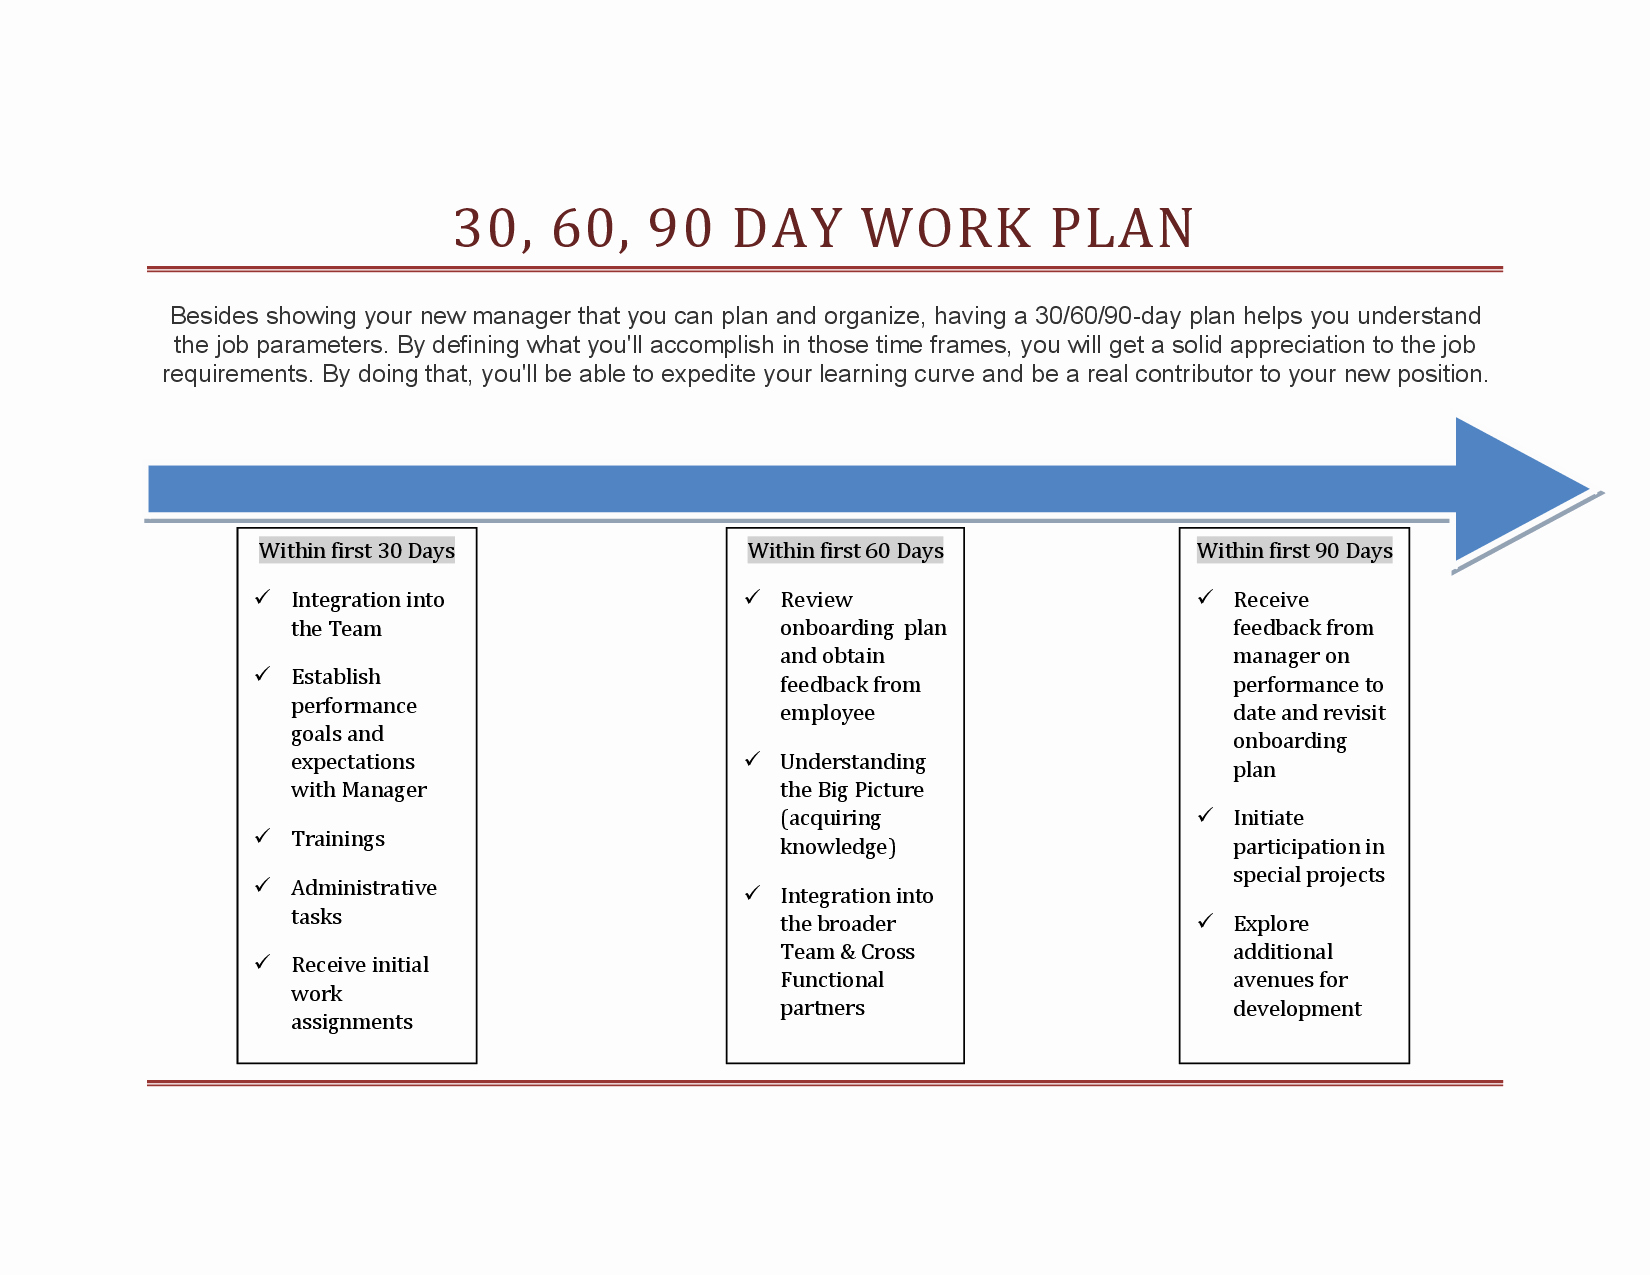 First 100 Days Plan Template Fresh 30 60 90 Day Work Plan Templatepdf by Tinammckenna